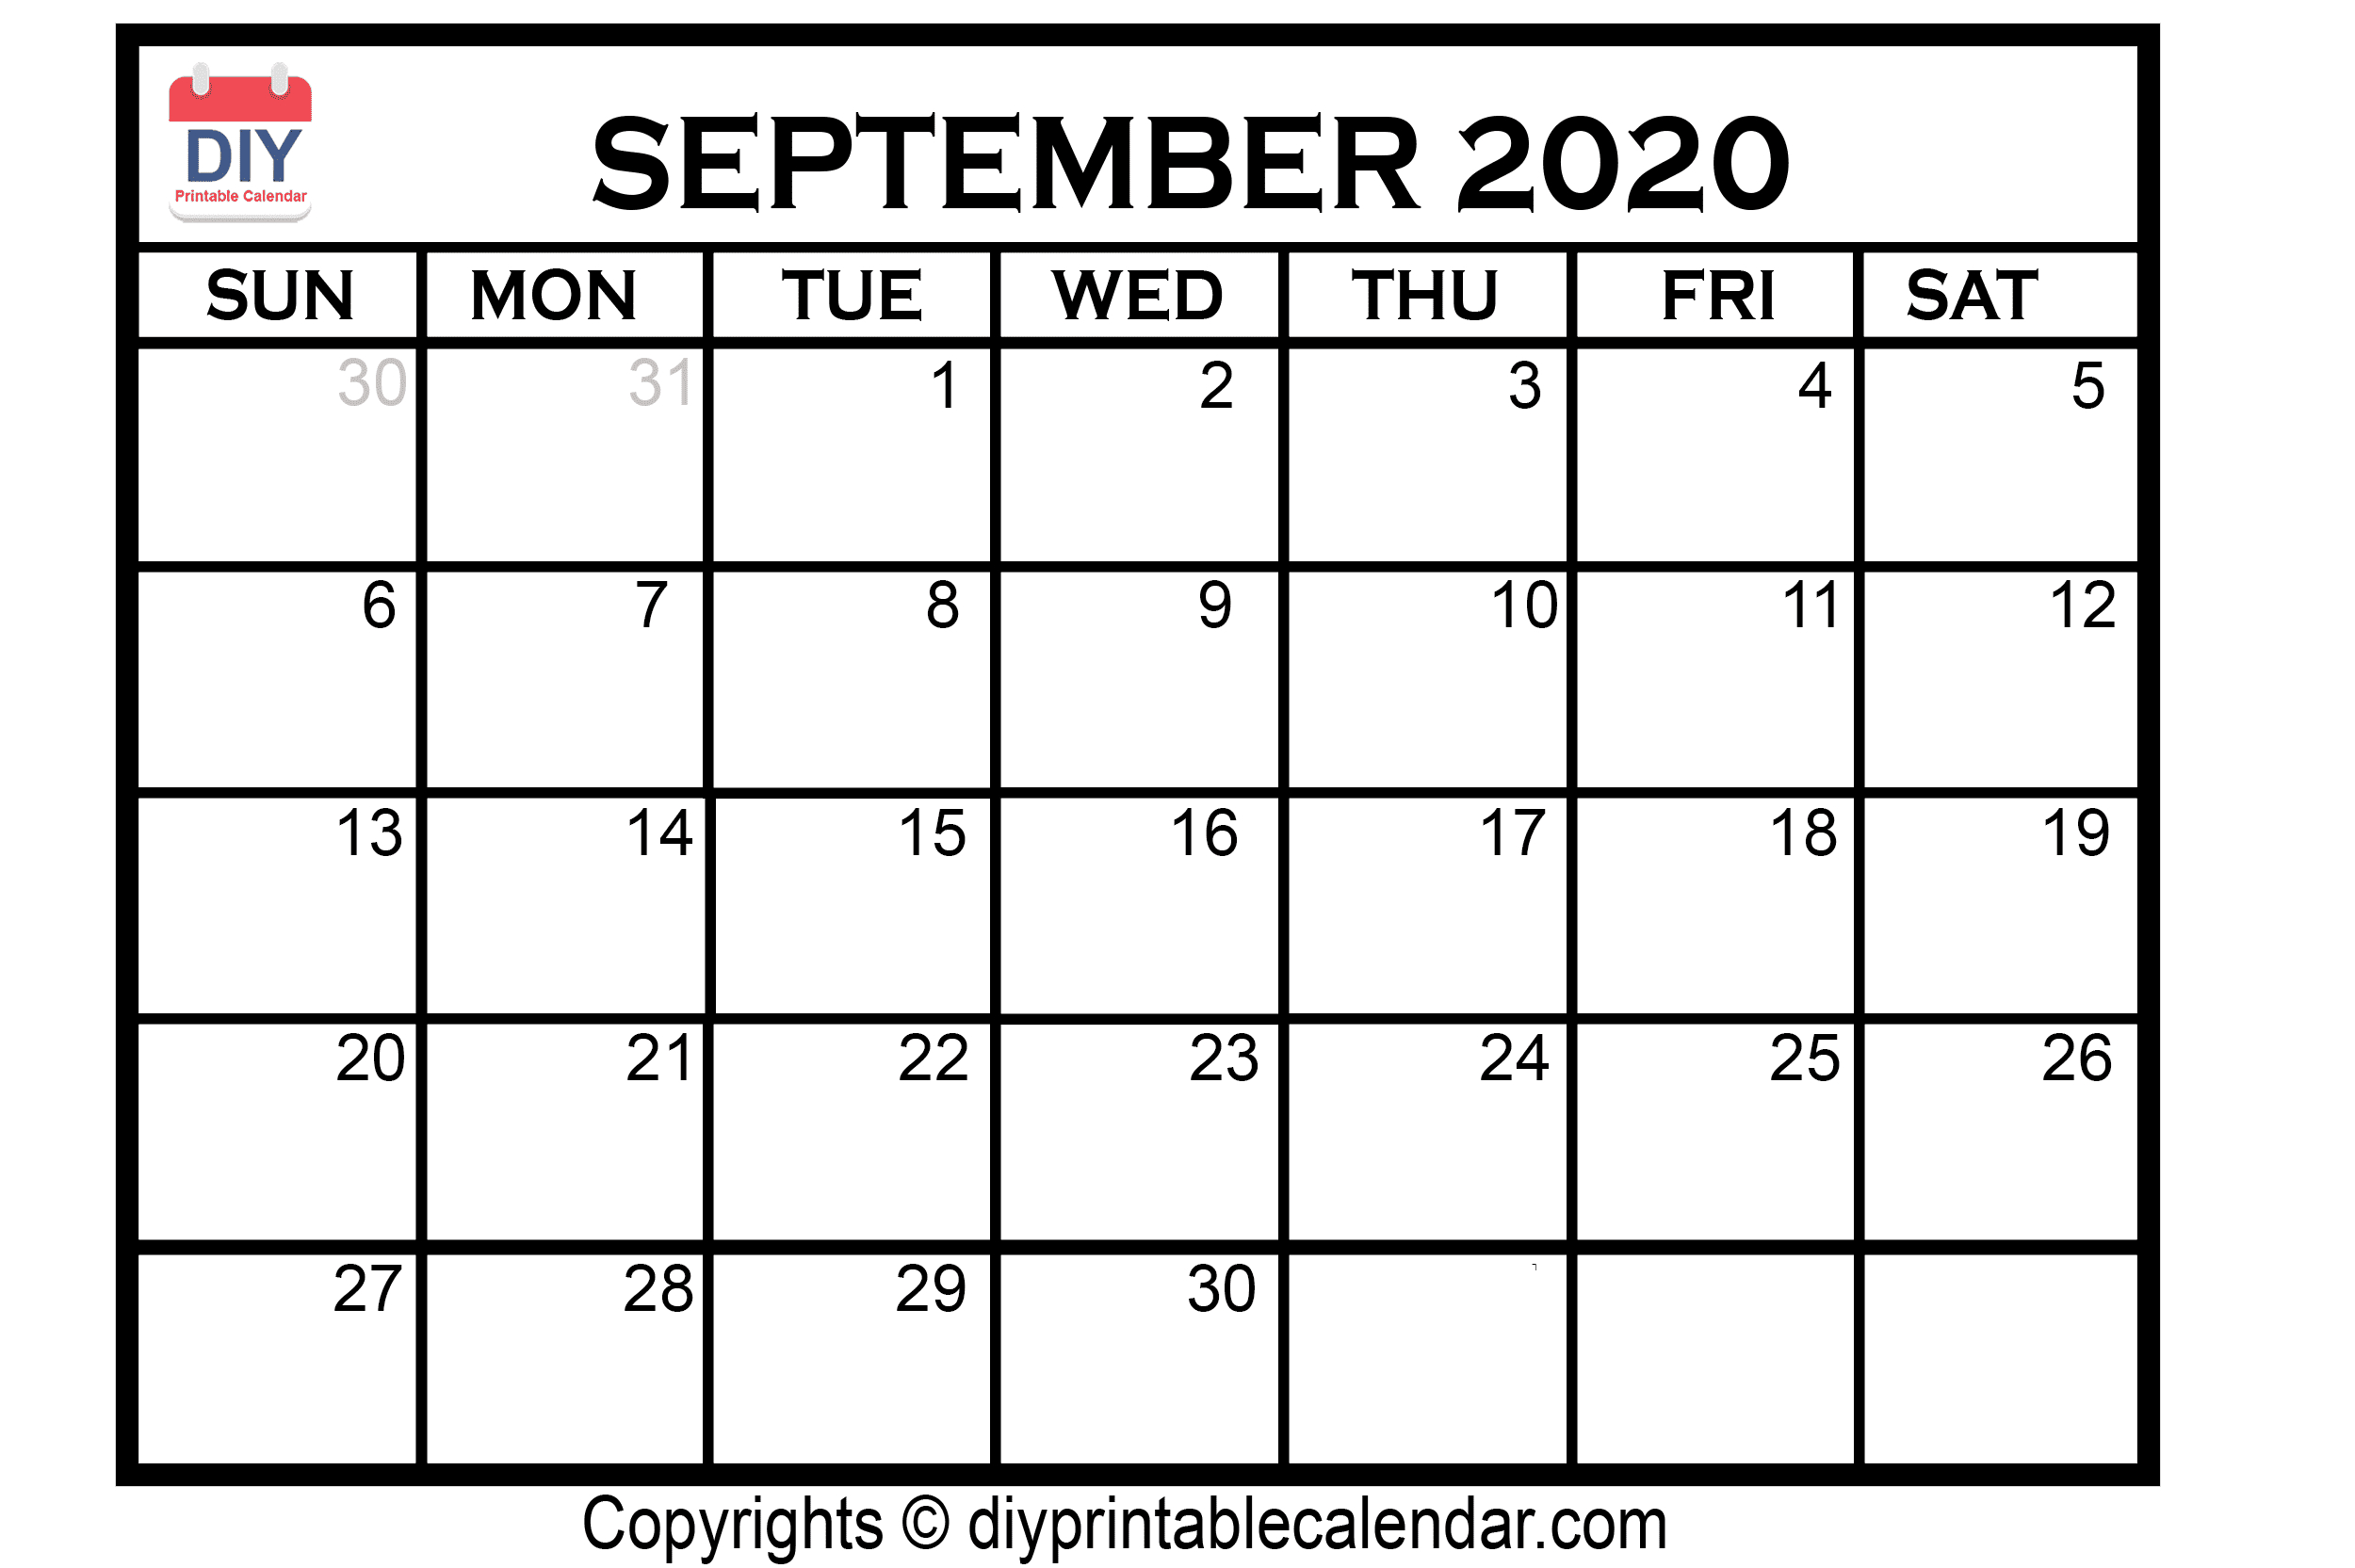 September 2020 Printable Calendar Template